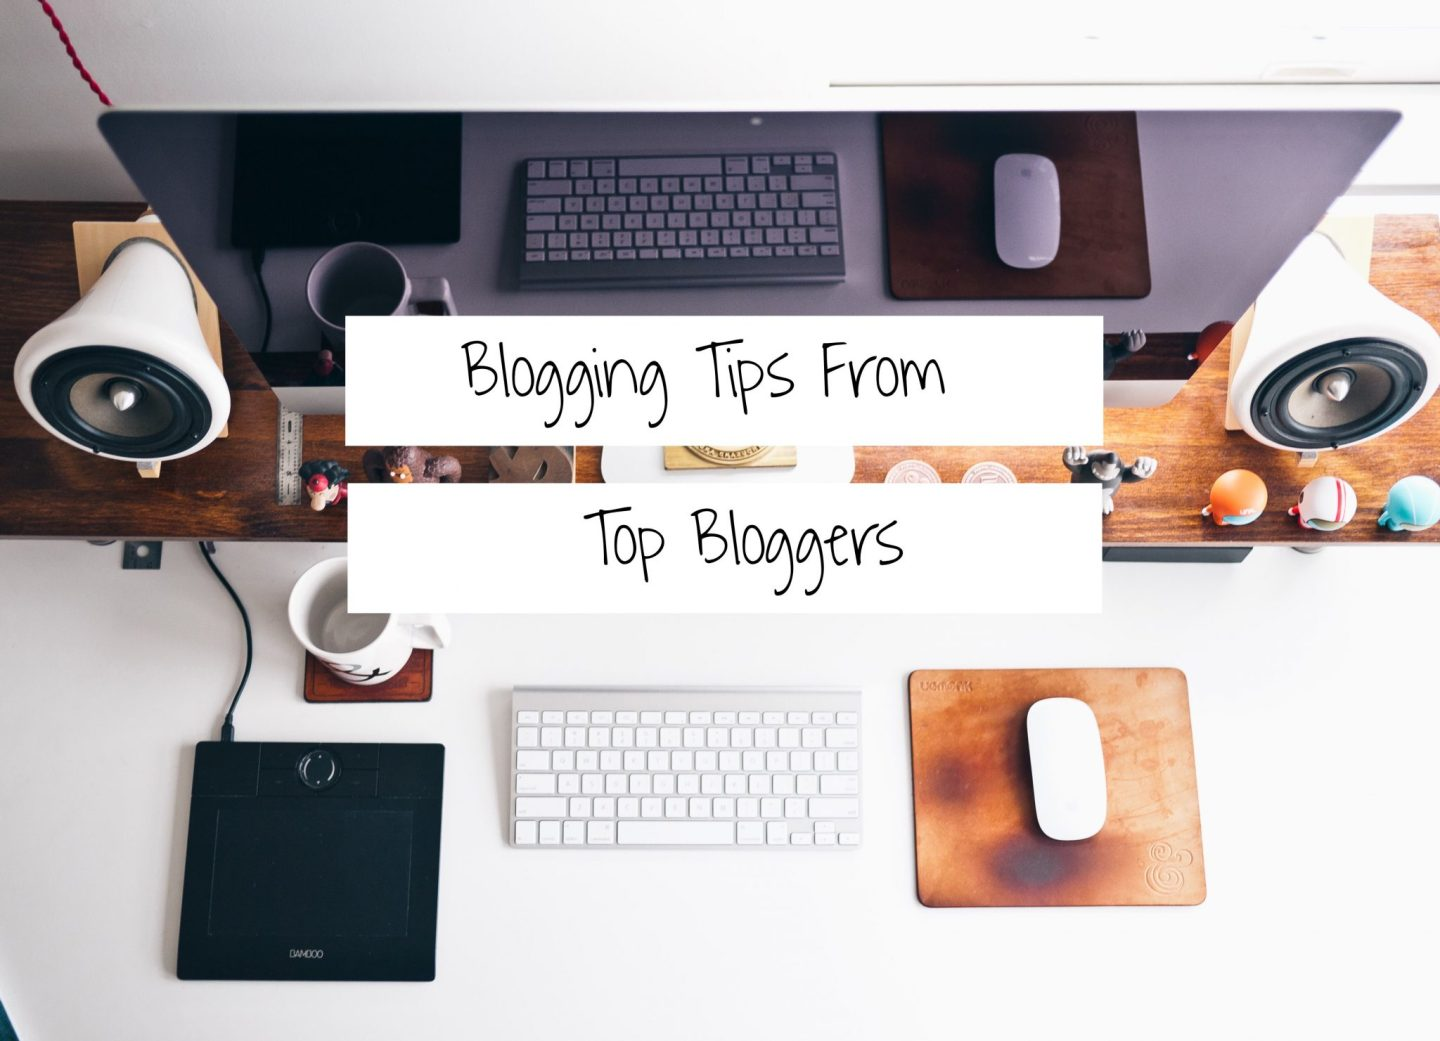 Blogging Tips From Top Bloggers